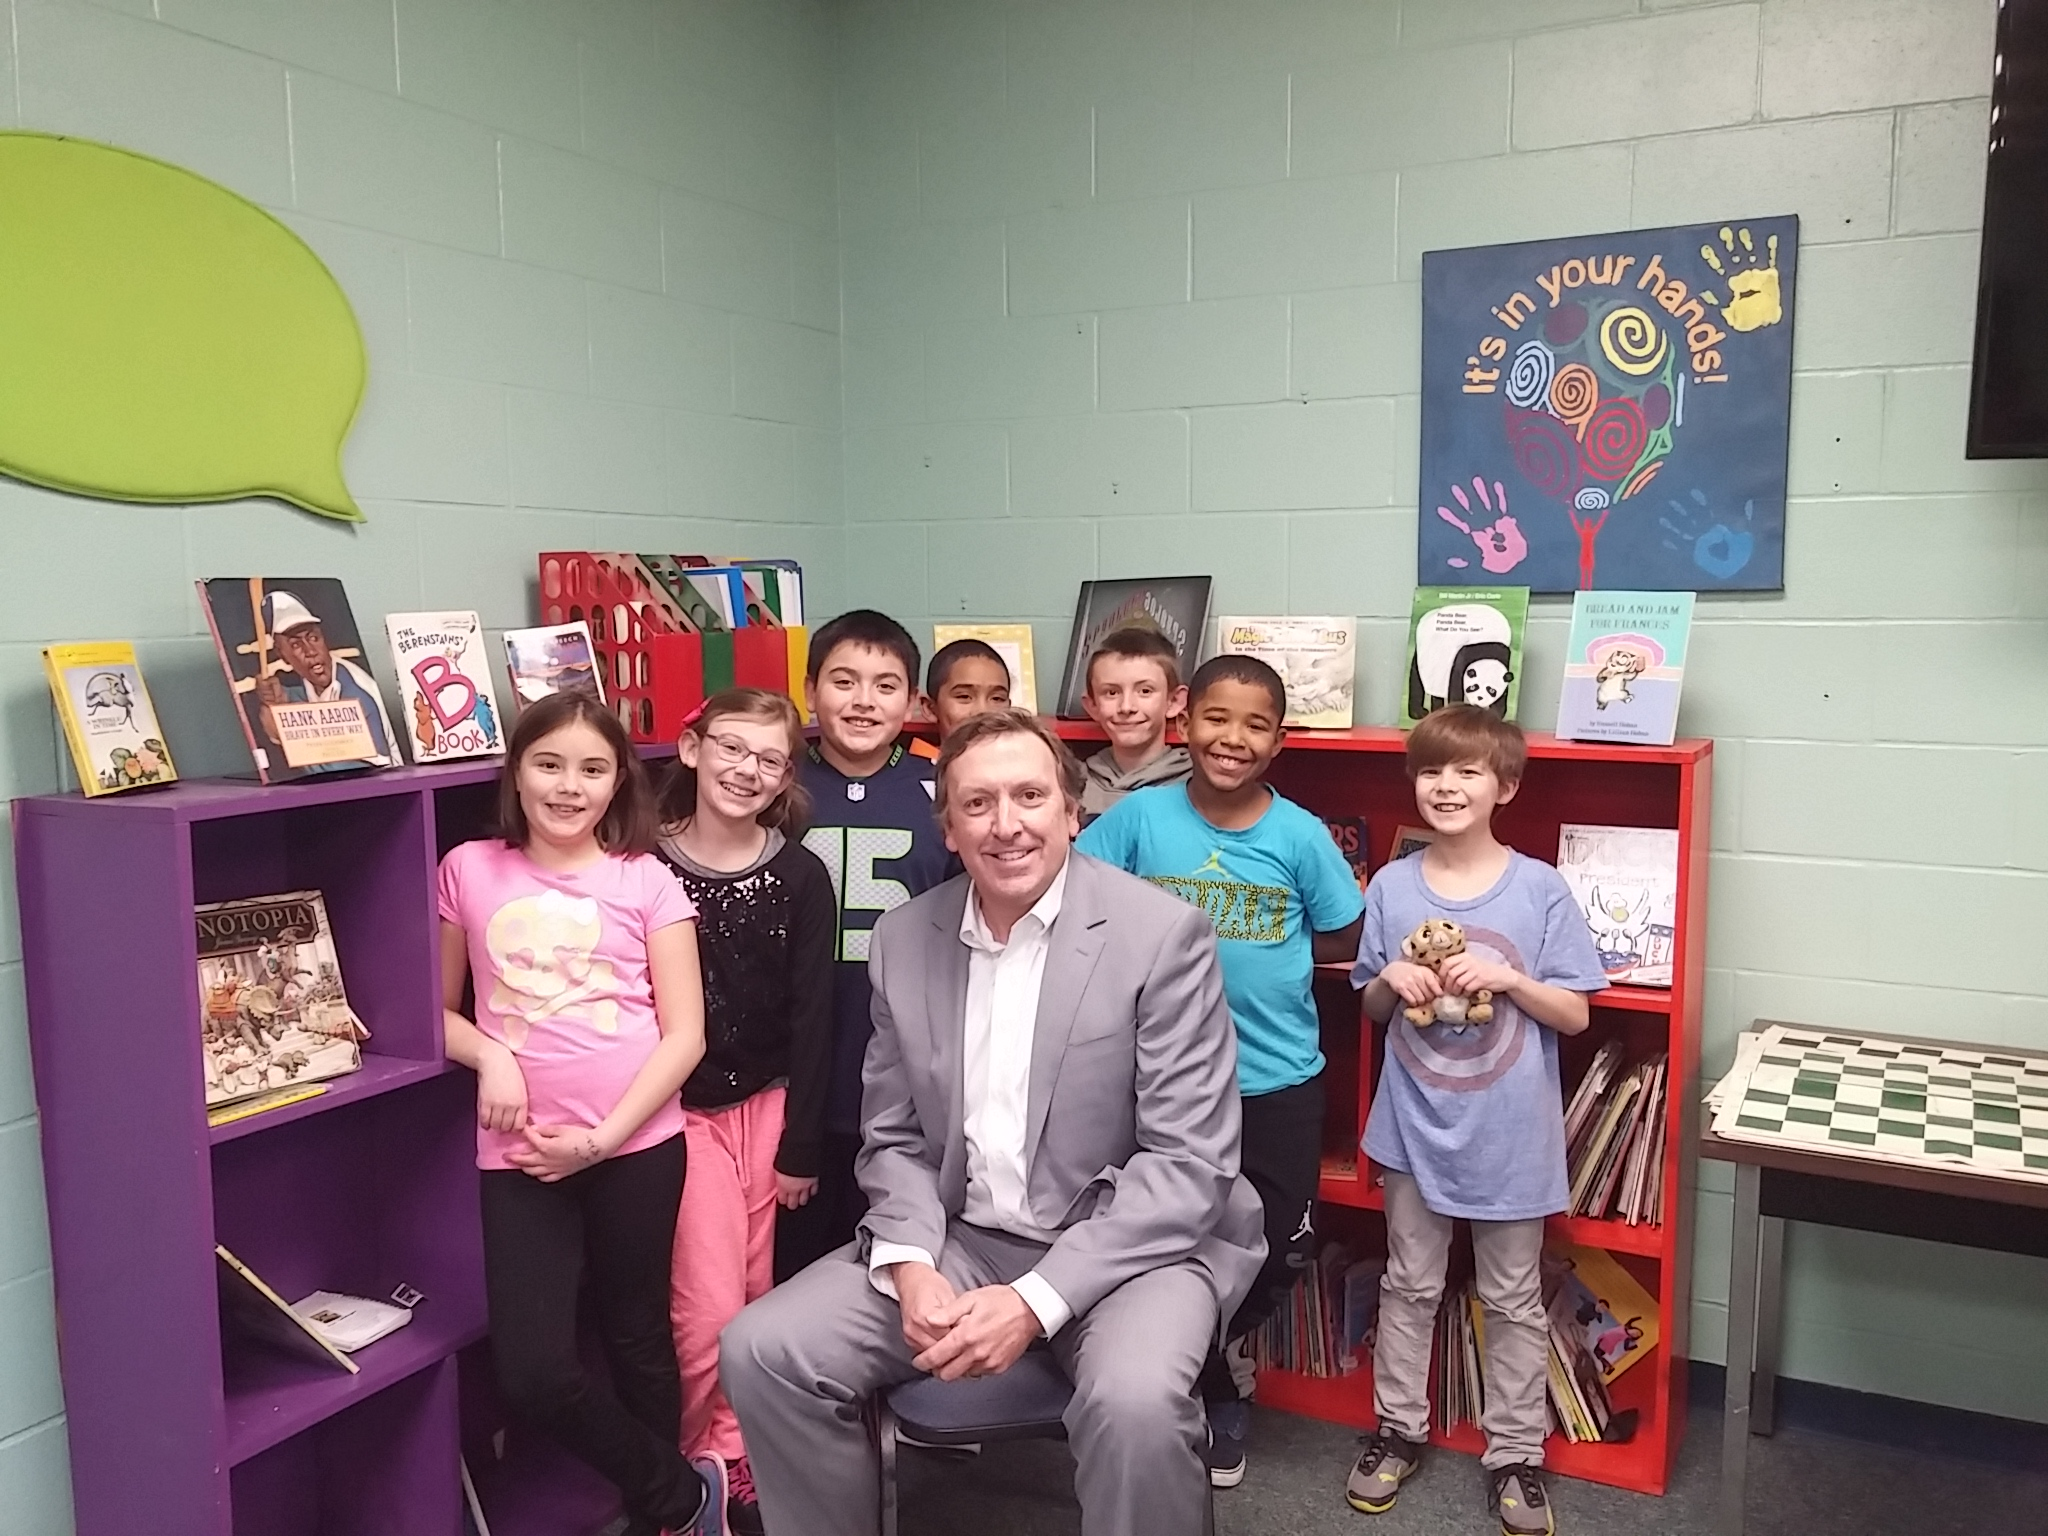 Erik Dyrland with some kids at the Boys and Girls Club on Kentucky Street. photo: Jeff Judkins